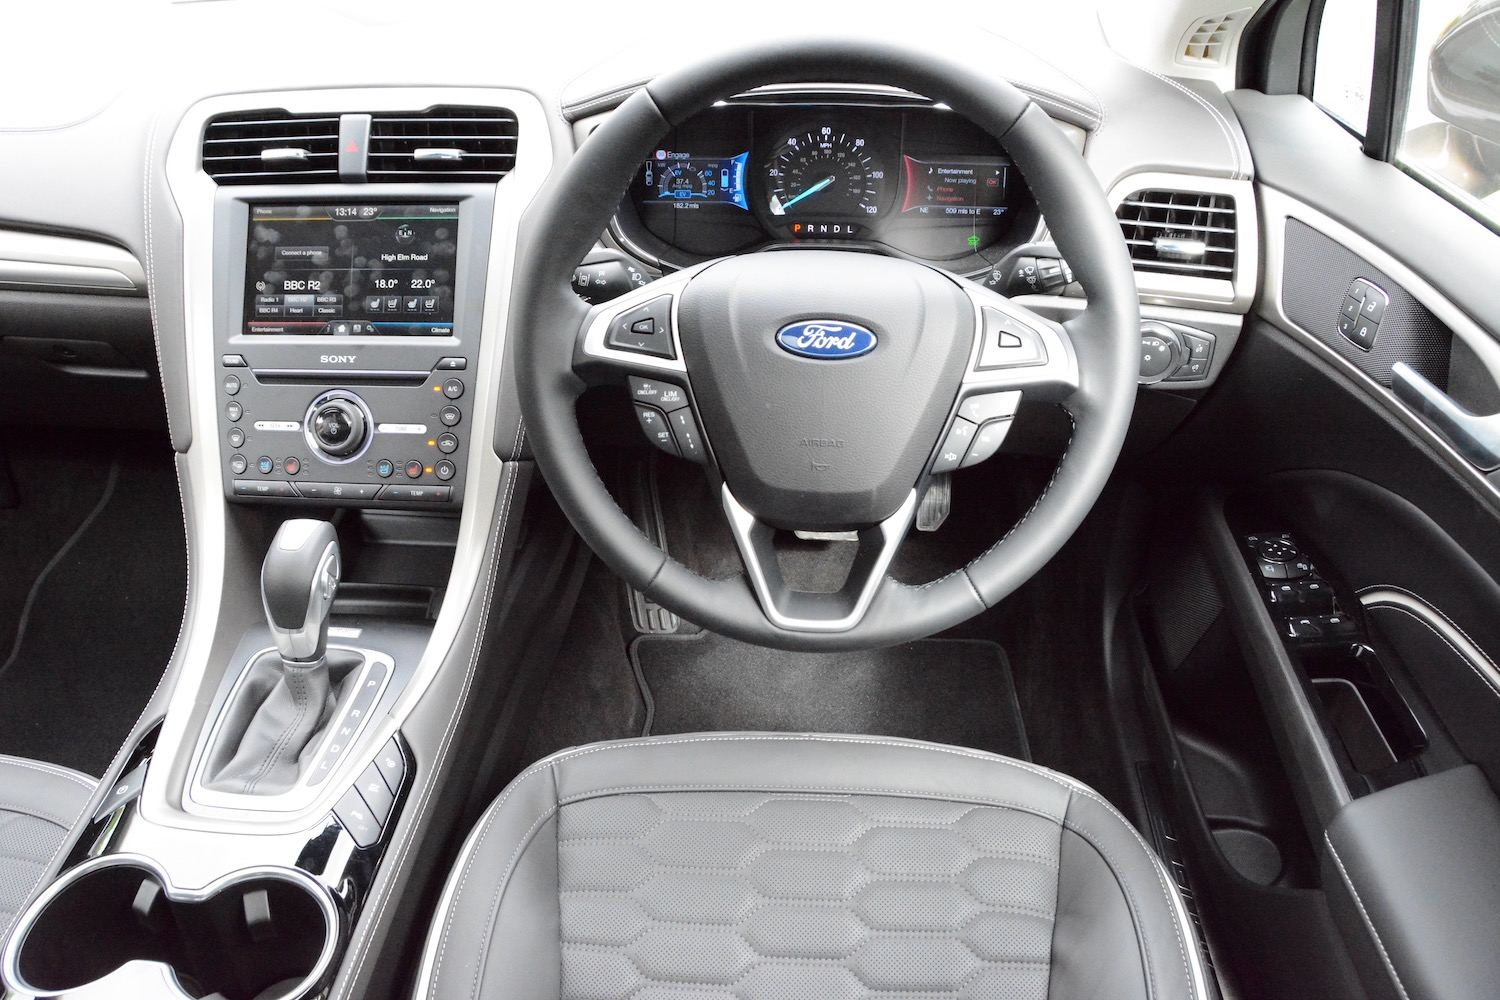 Commercial Vehicle Manufacturers Reviews Ford Mondeo Vignale Hybrid Review Greencarguide Co Uk